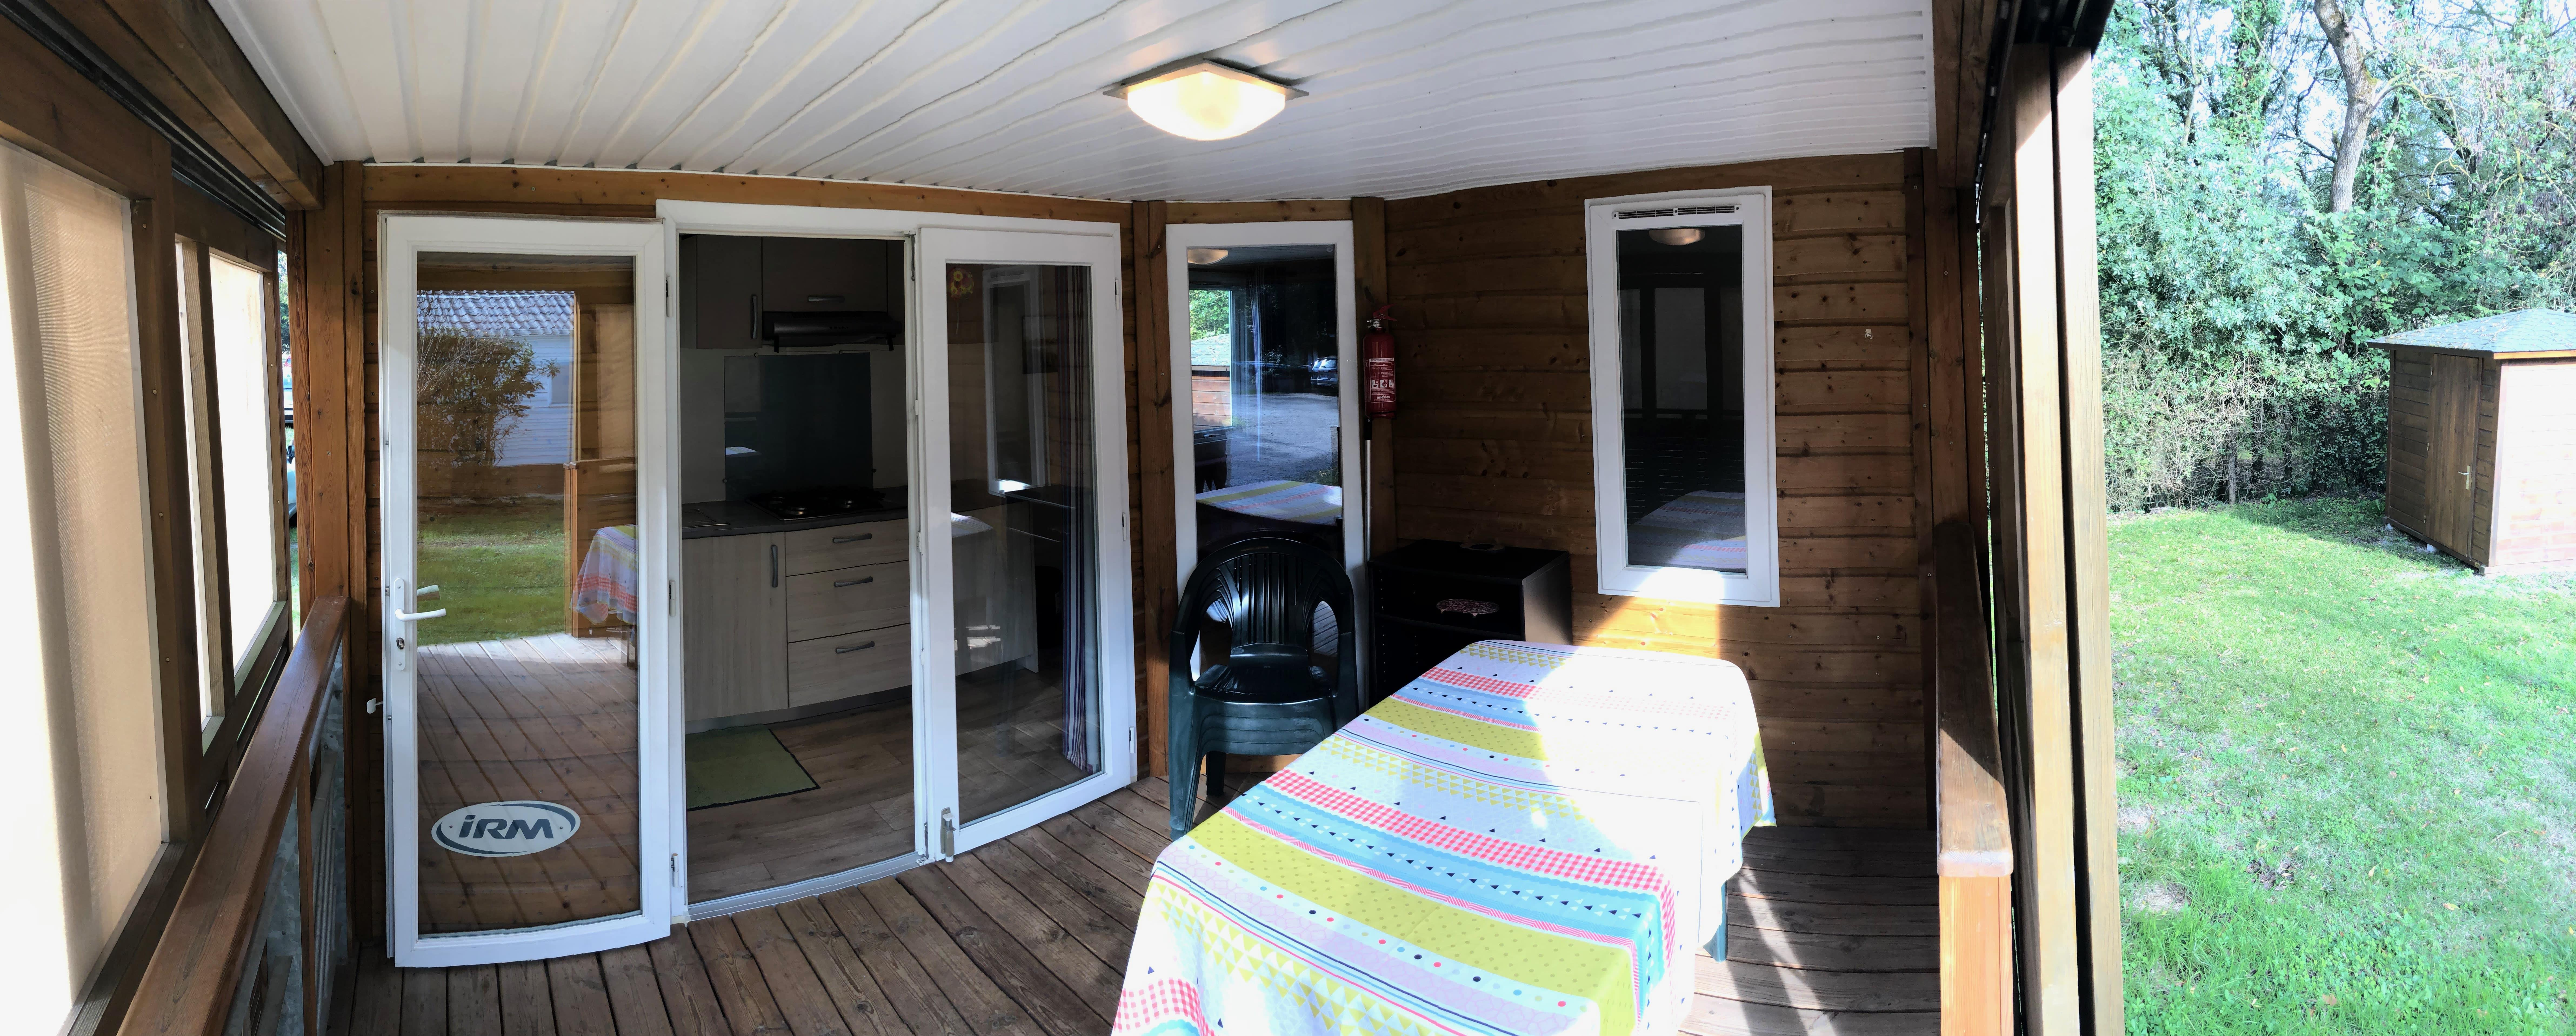 Mietunterkunft - Mobil-Home 2 Chambres (Confort) - Camping Belle Rivière